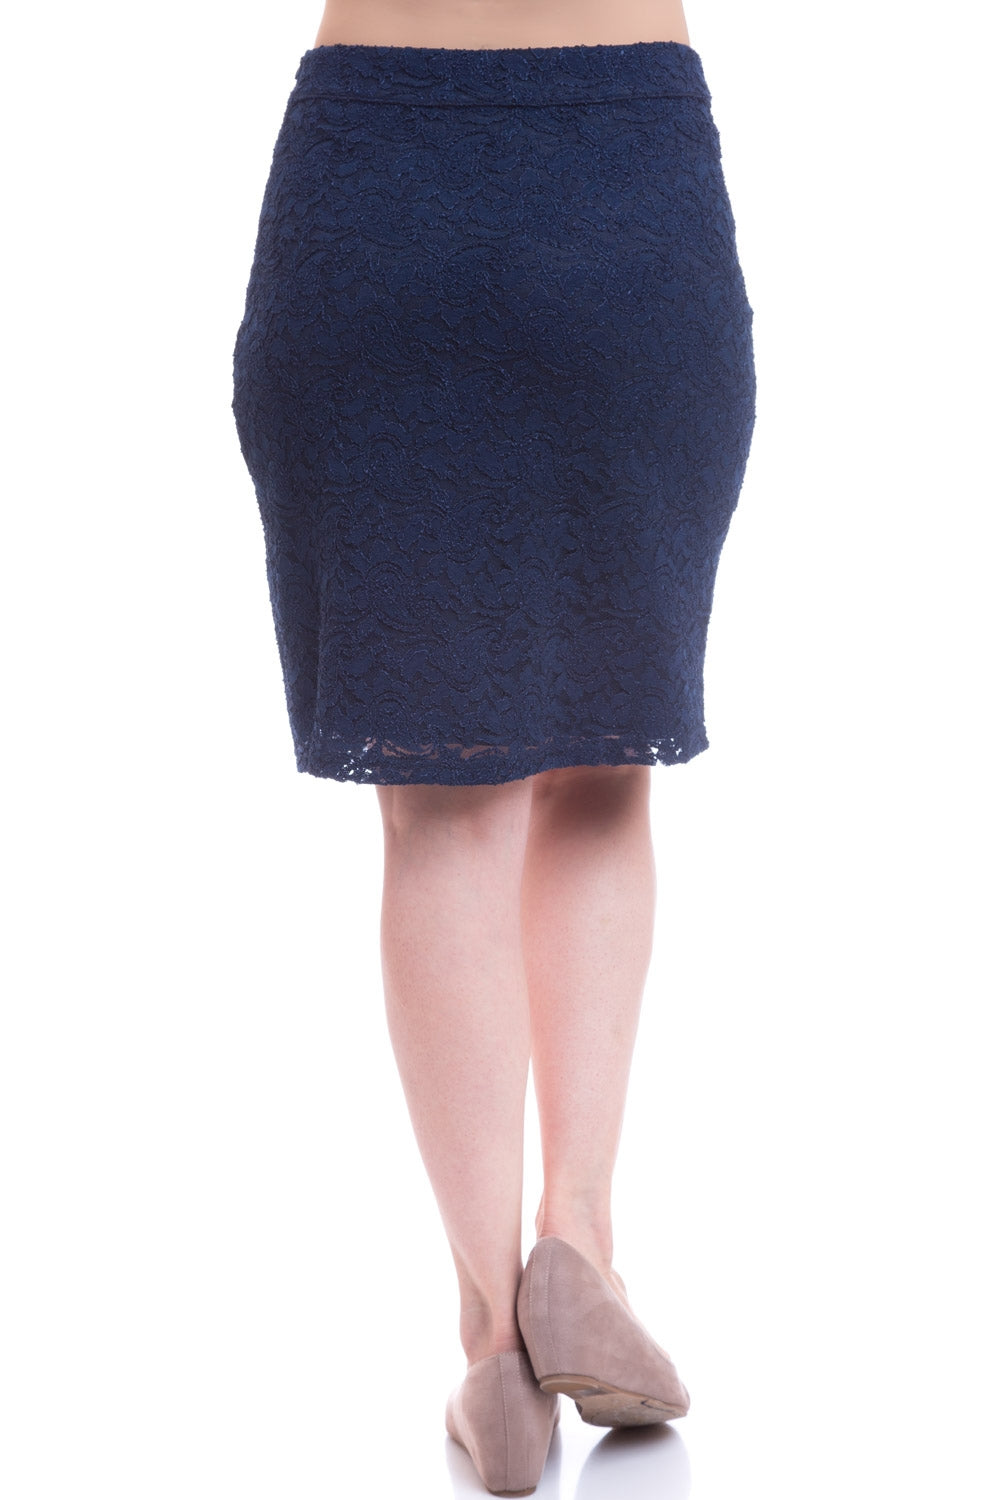 Type 2 Insightful Blue Skirt